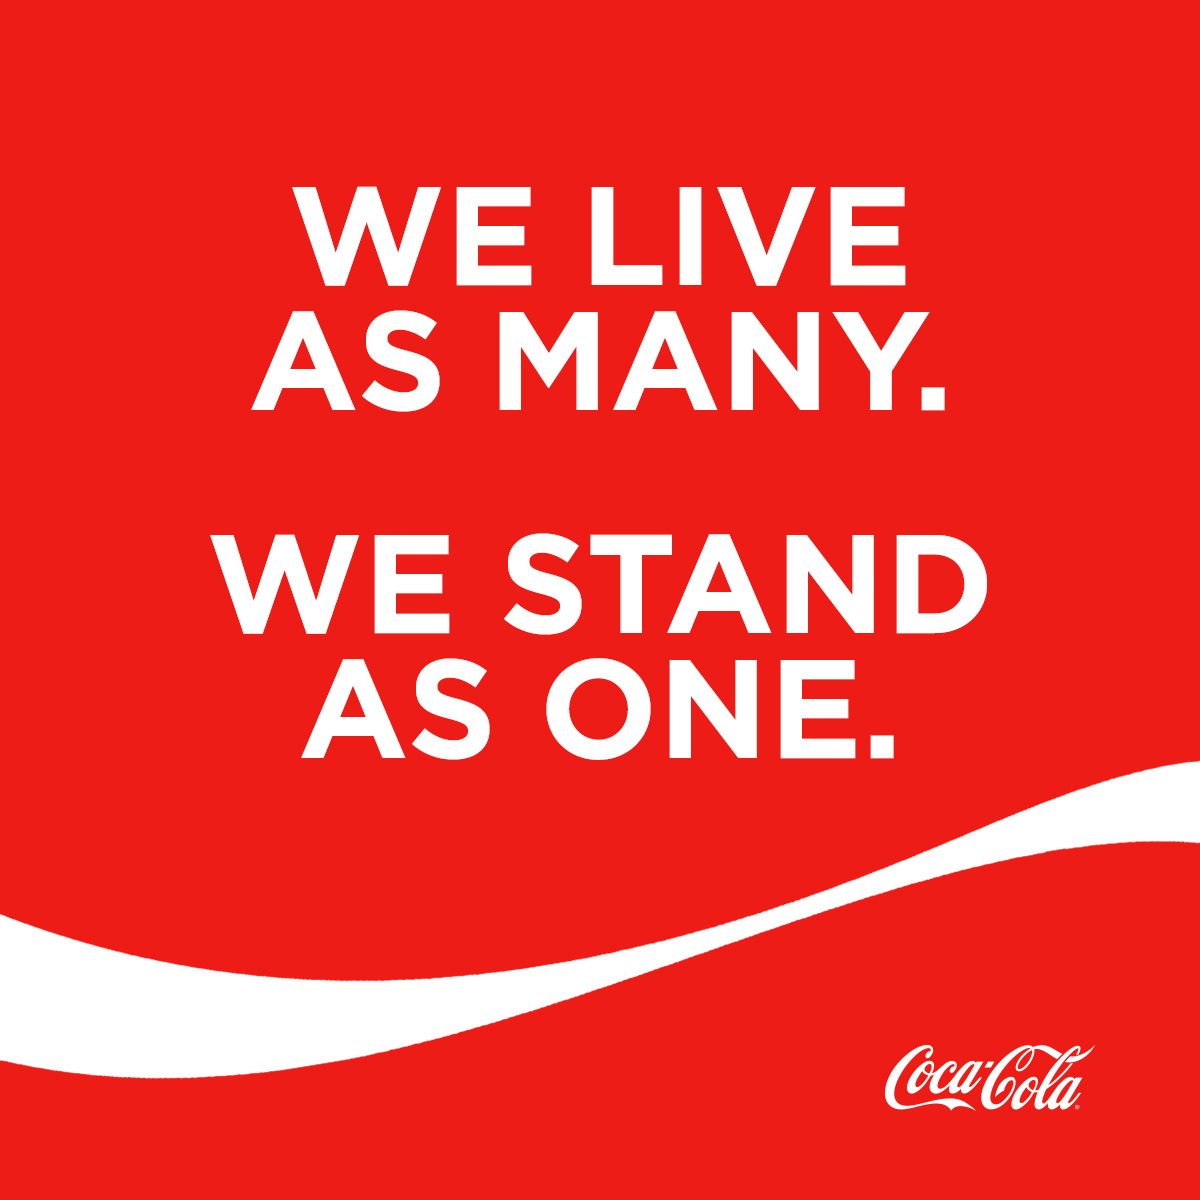 Coke often promotes unity or peace in their ads, but ultimately they want their unsuspecting consumers to purchase Coca-Cola and associate it with such universal concepts.